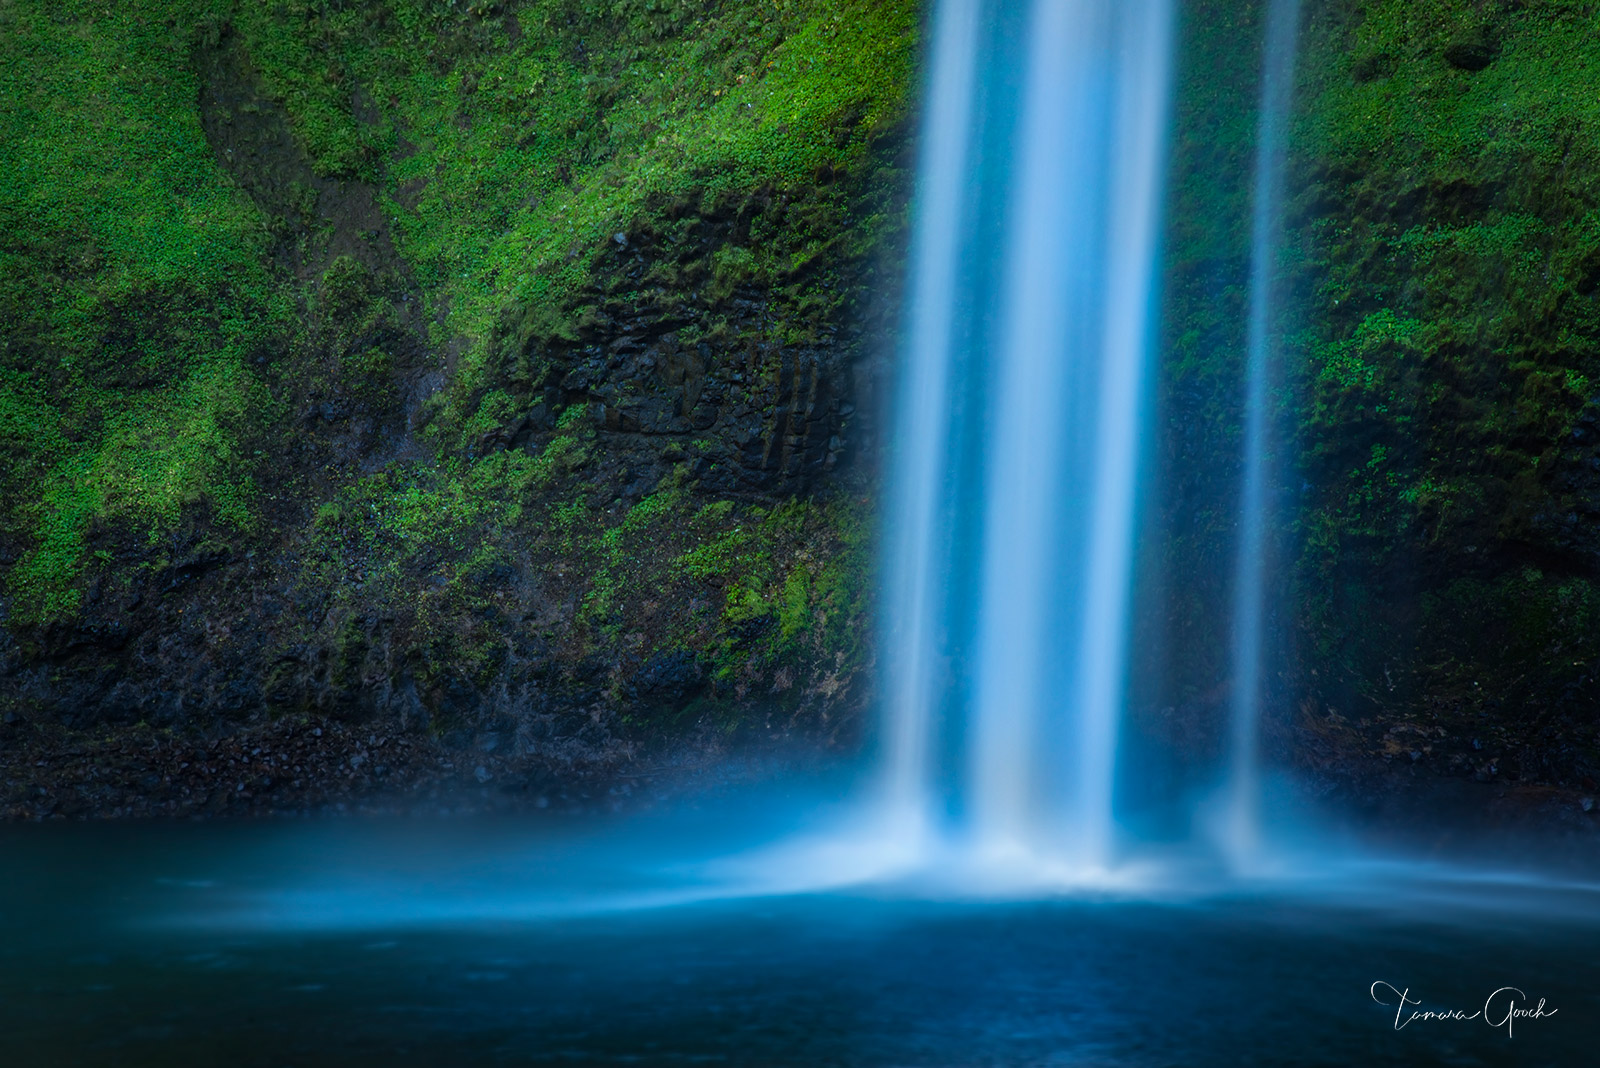 A lovely fine art limited edition print of a waterfall cascading into a pool of water. The dark rock wall behind covered with brilliant green foliage.